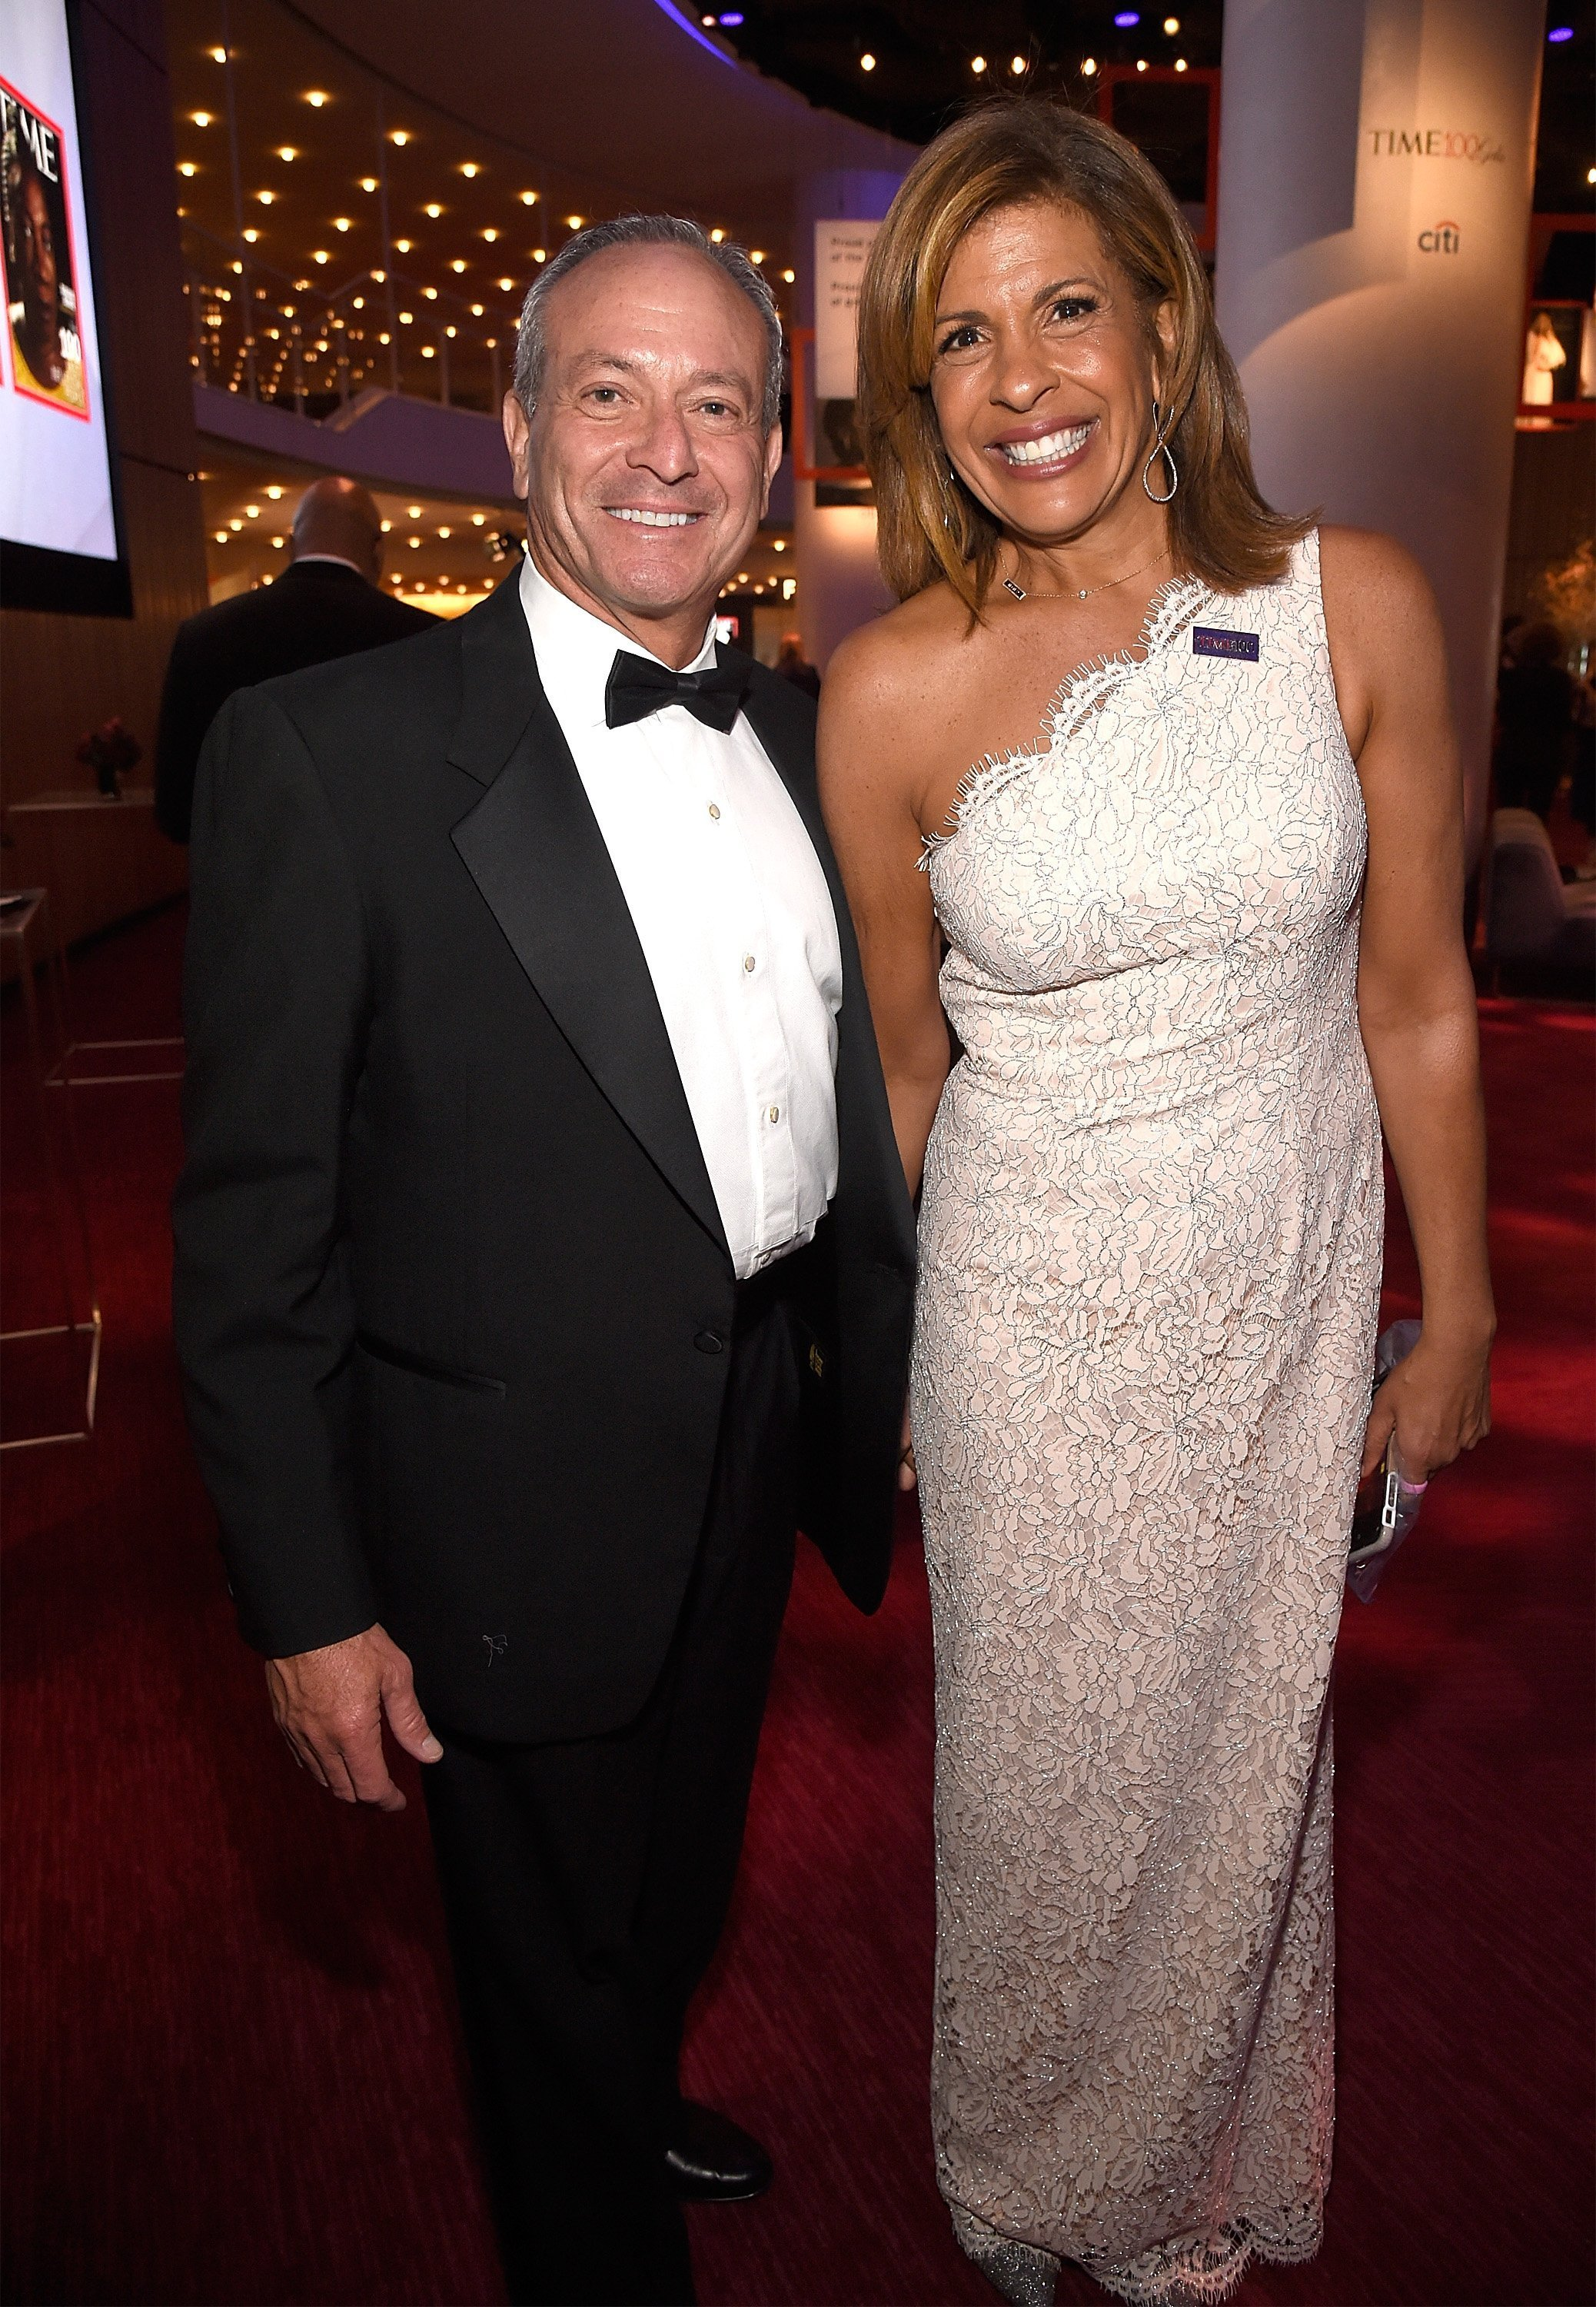 Joel Schiffman and Hoda Kotb attend the 2018 Time 100 Gala at Jazz at Lincoln Center on April 24, 2018. | Source: Getty Images